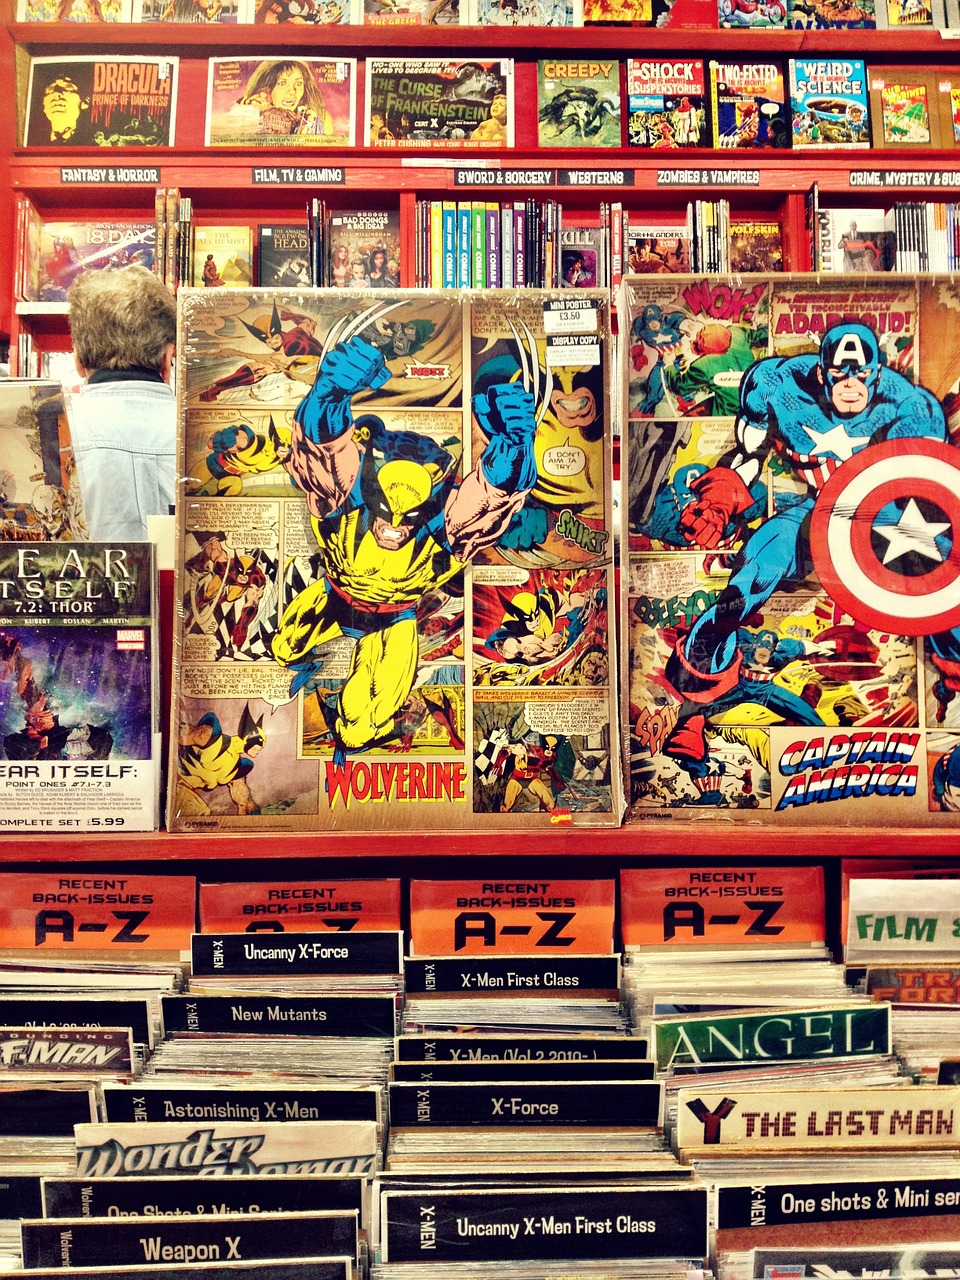 Best Selling Comic Books of All Time